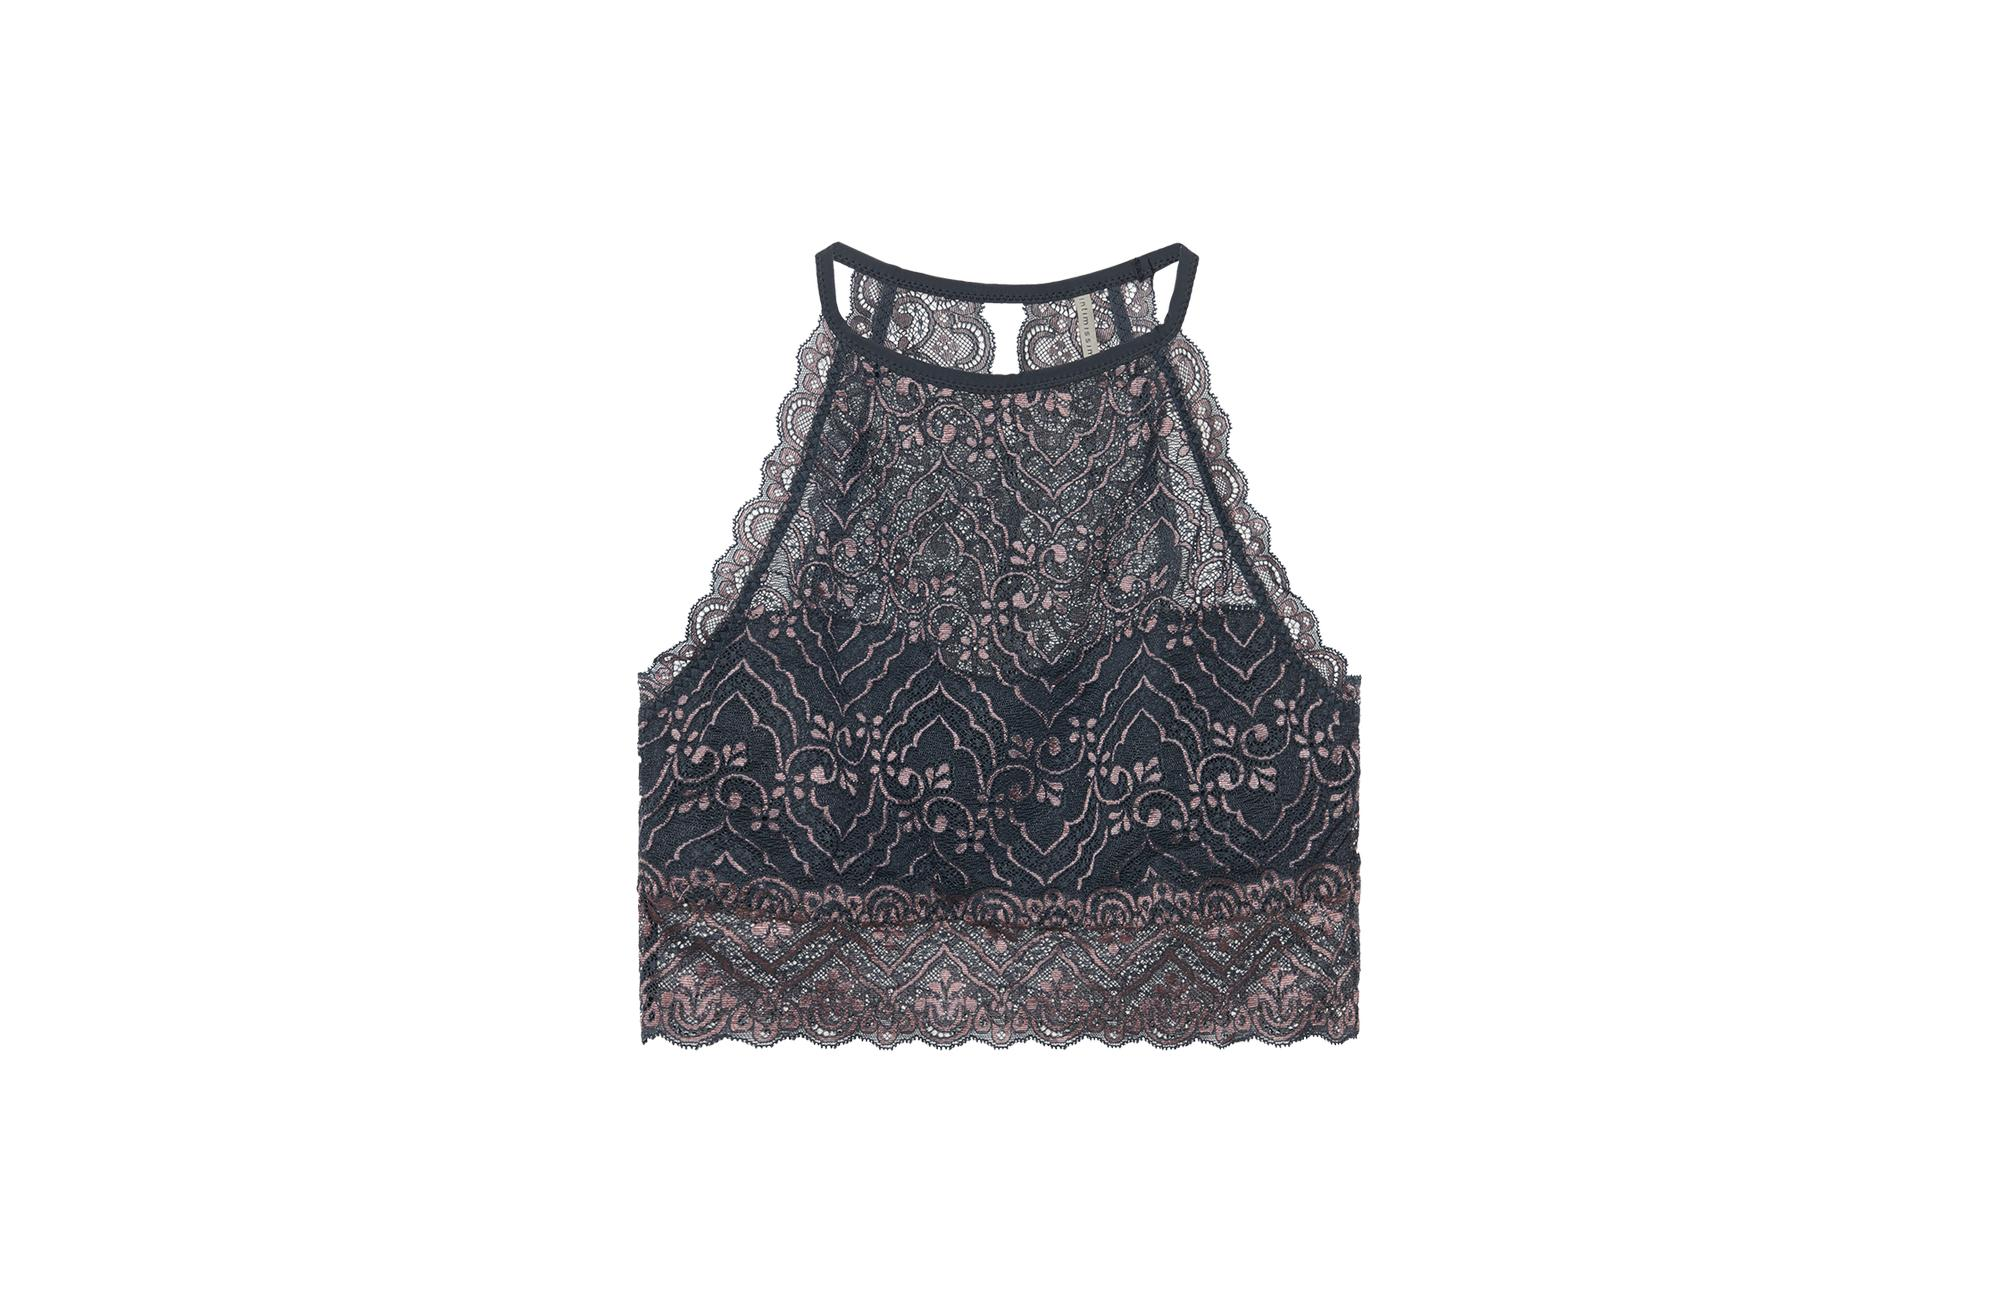 76b99daa9eb90 Bralette in Lycra® Lace - Intimissimi